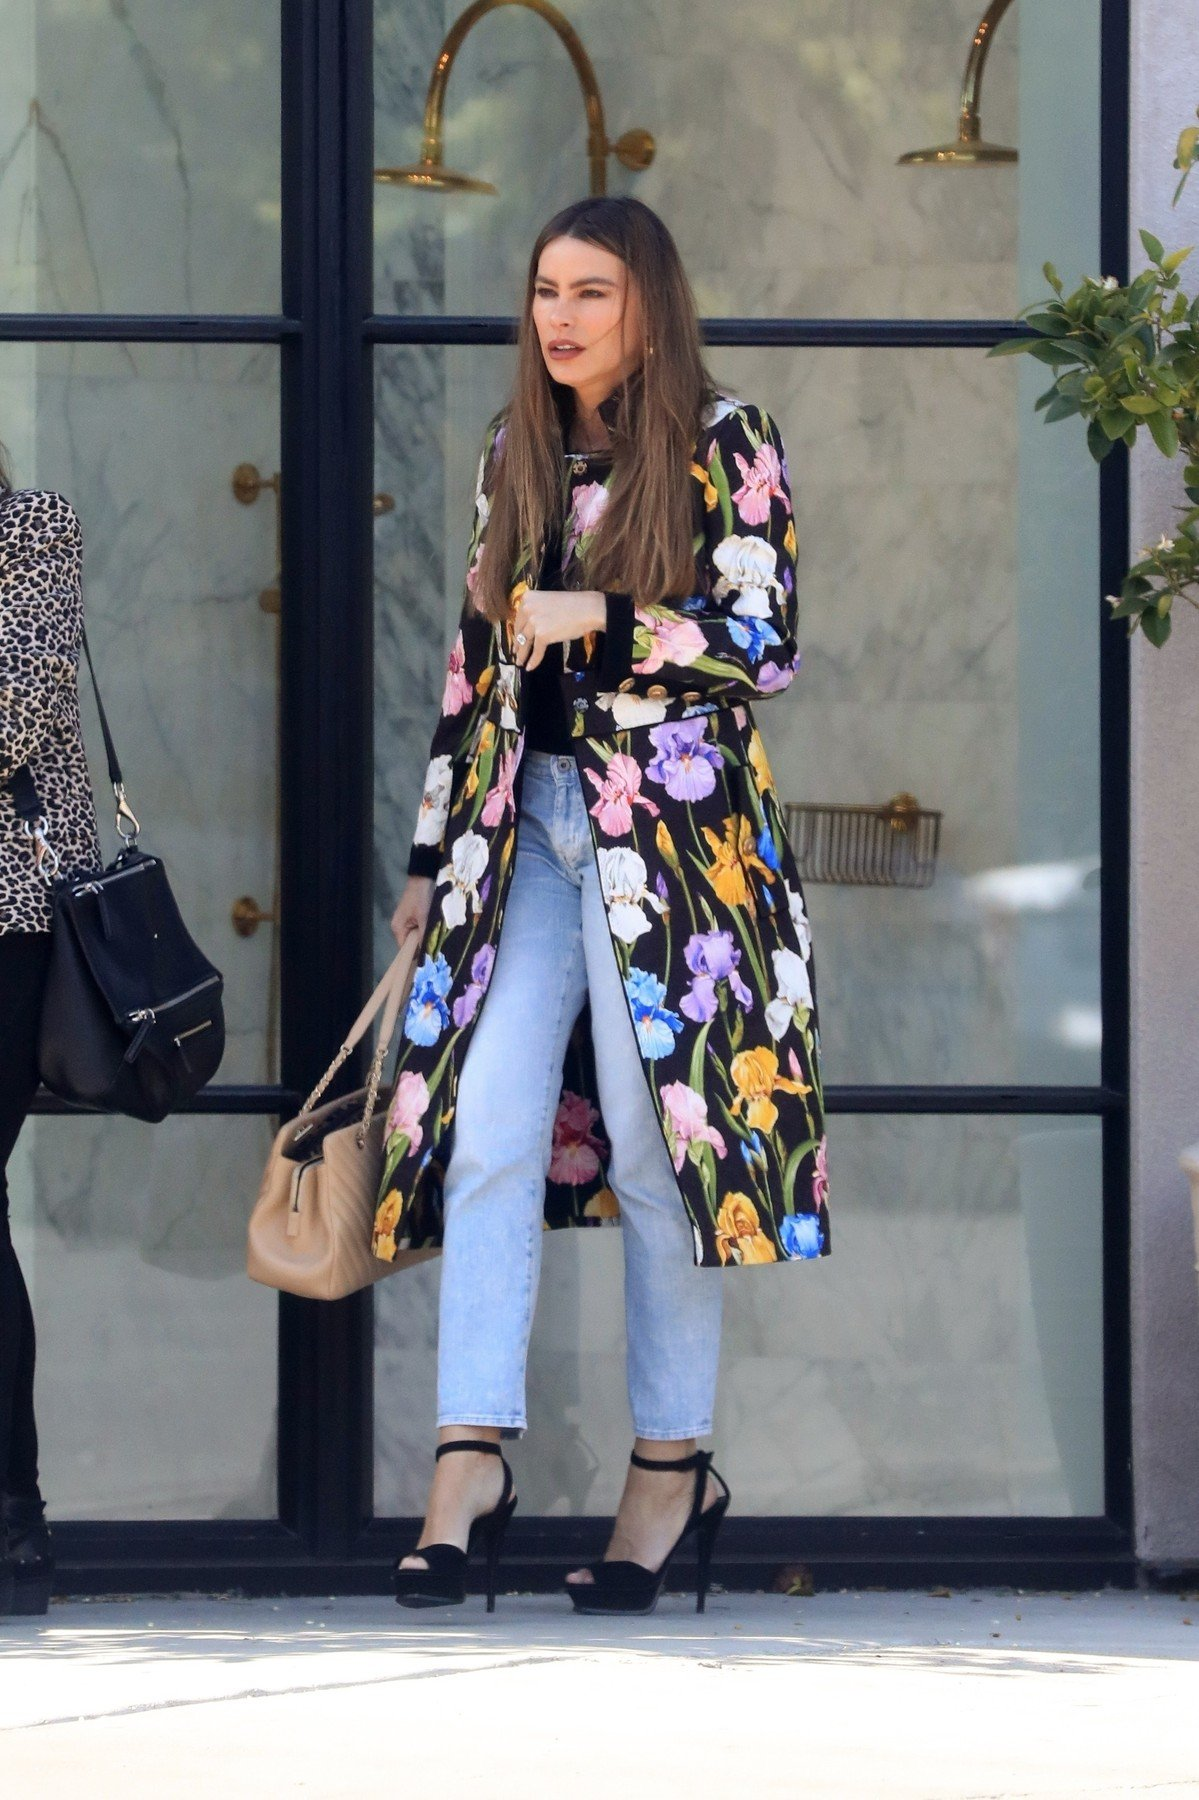 West Hollywood, CA  - Sofia Vergara looks colorful in a long floral print coat with jeans and black strappy heels for a shopping outing in West Hollywood with a girlfriend.  Pictured: Sofia Vergara  BACKGRID USA 15 APRIL 2019, Image: 426296471, License: Rights-managed, Restrictions: , Model Release: no, Credit line: Profimedia, Backgrid USA